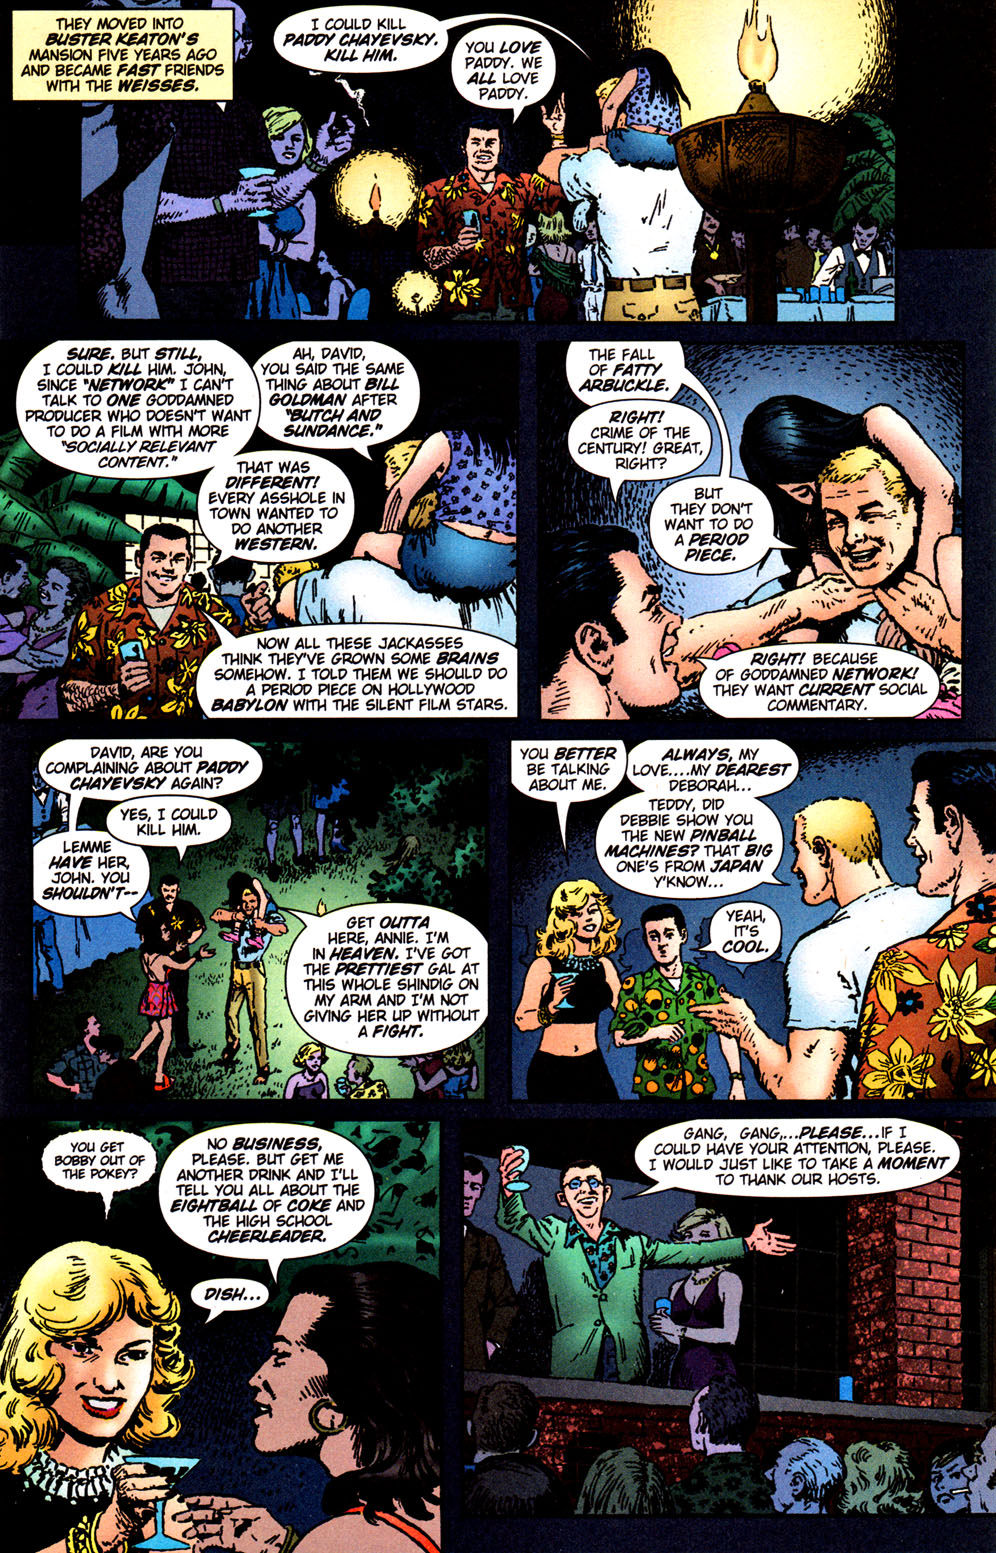 Read online Caper comic -  Issue #5 - 13